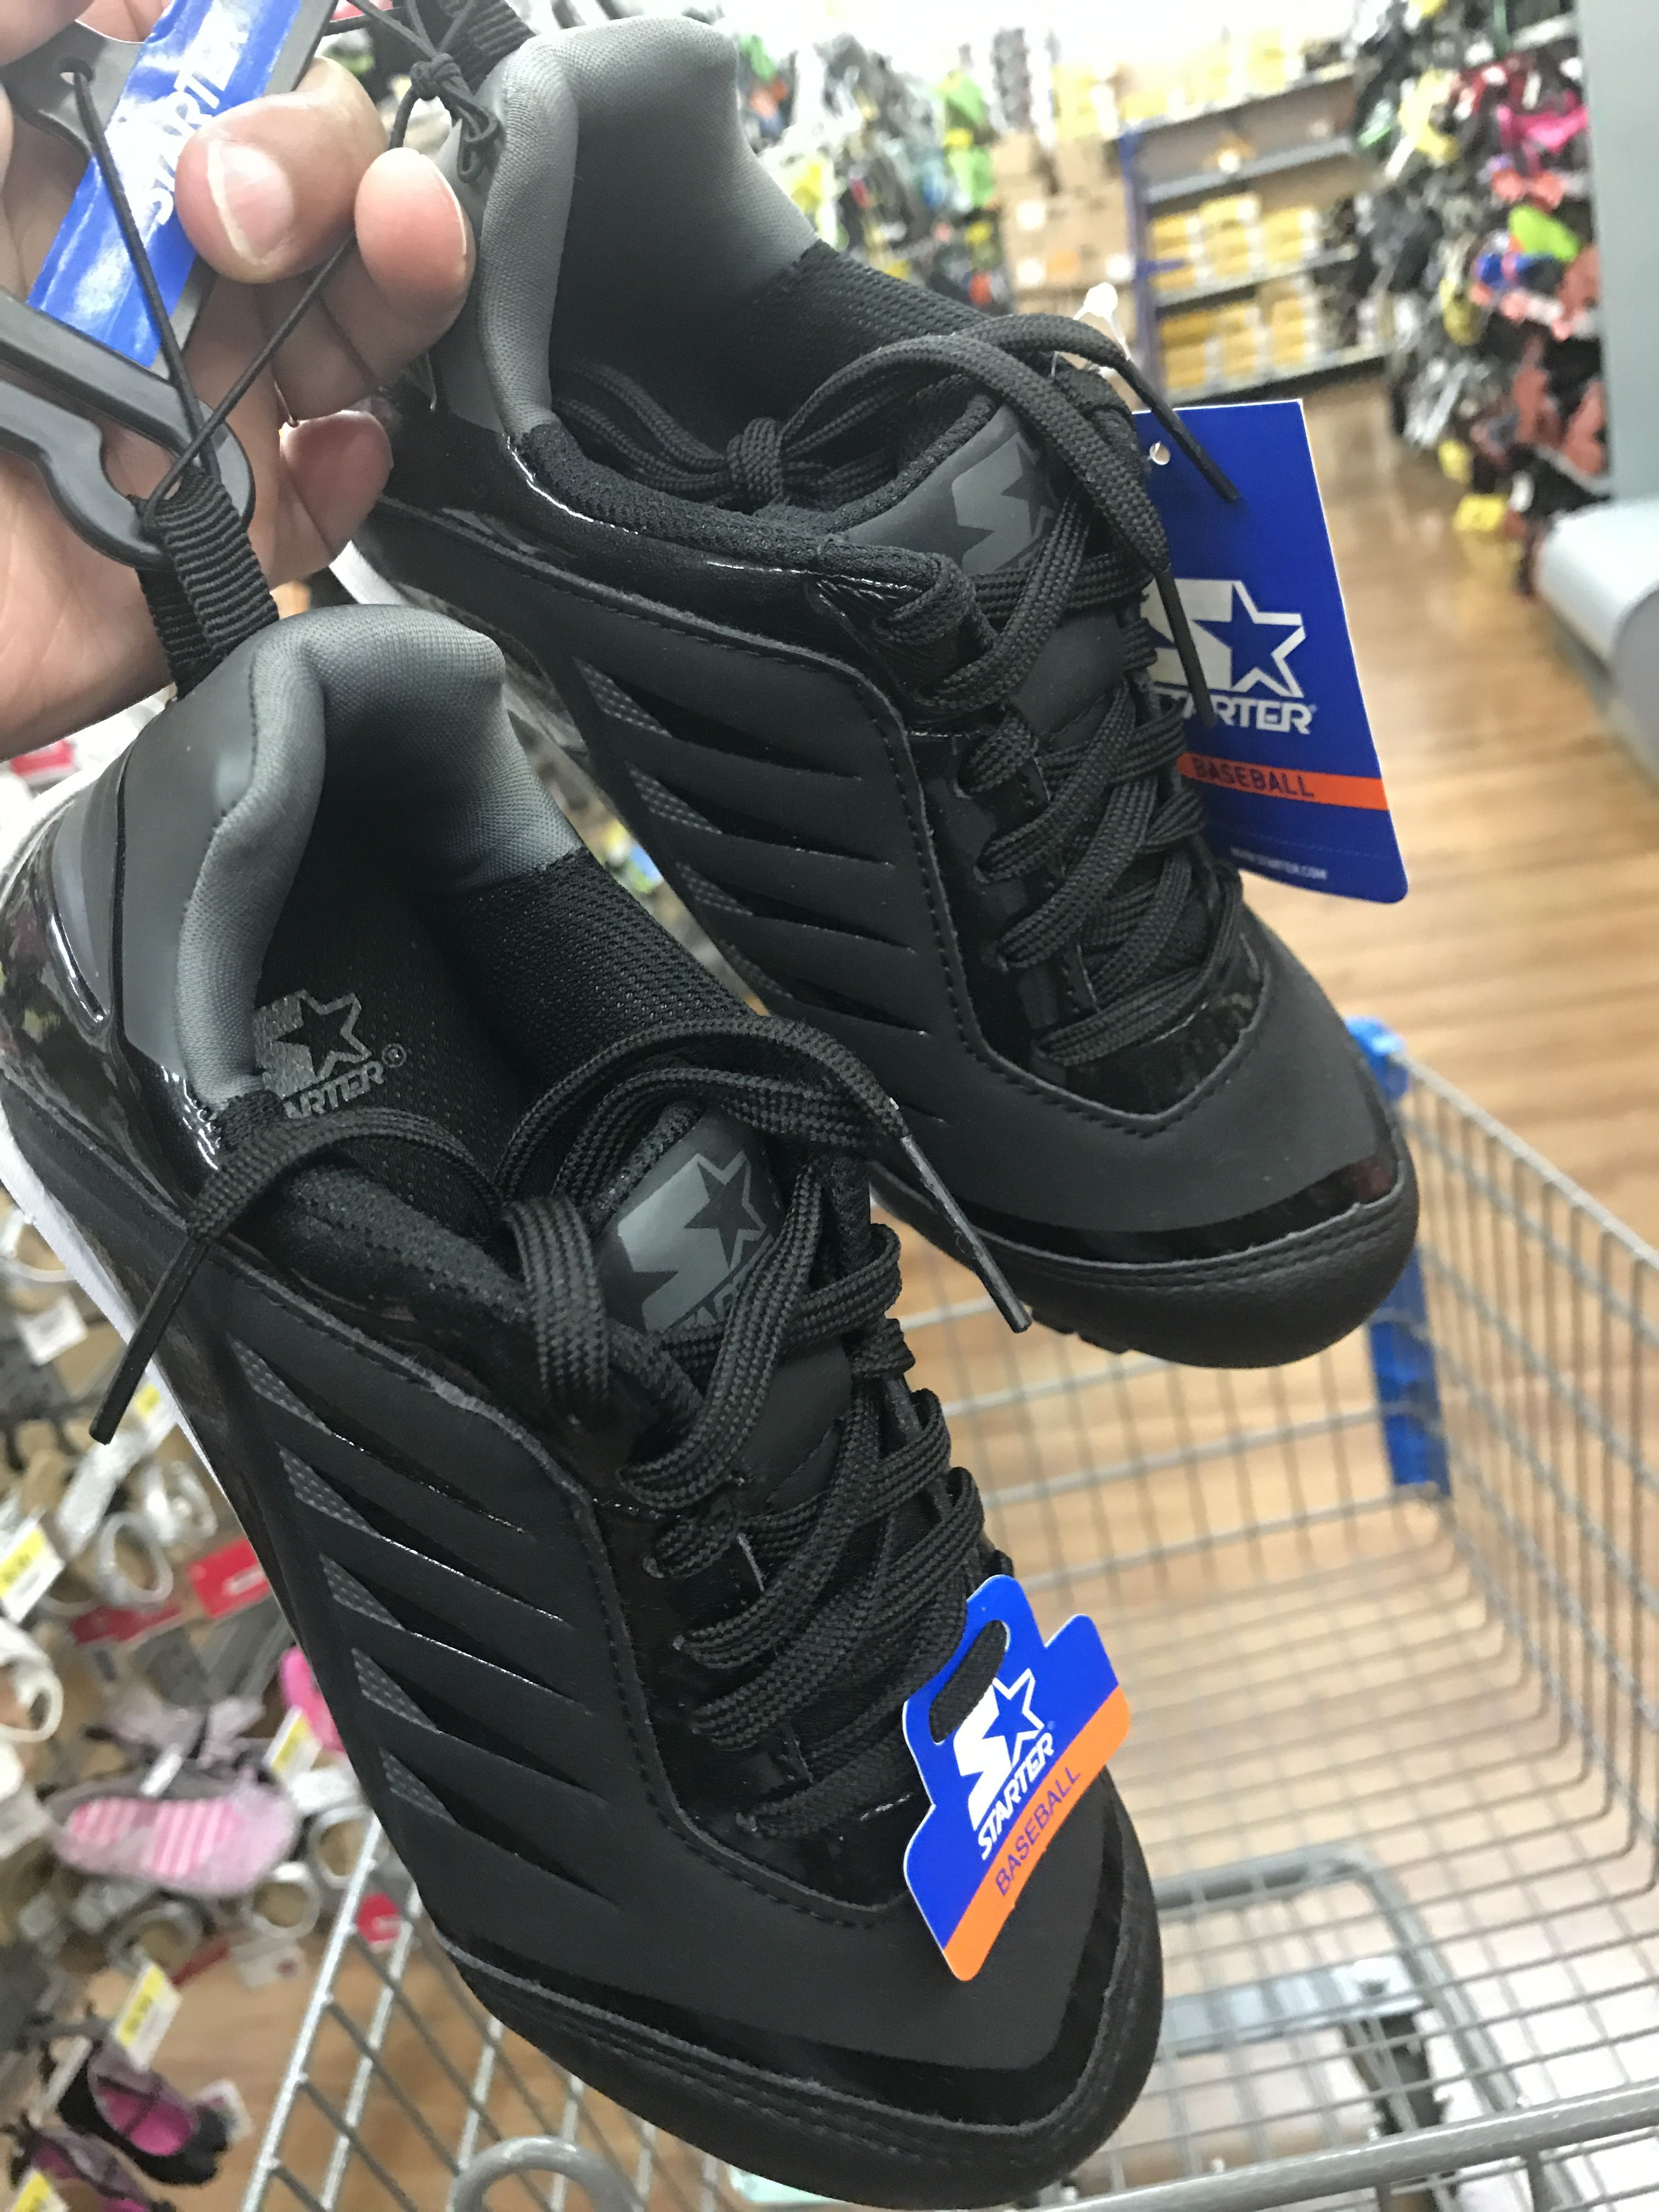 326ceebf0478 Walmart cleats All Black Sneakers